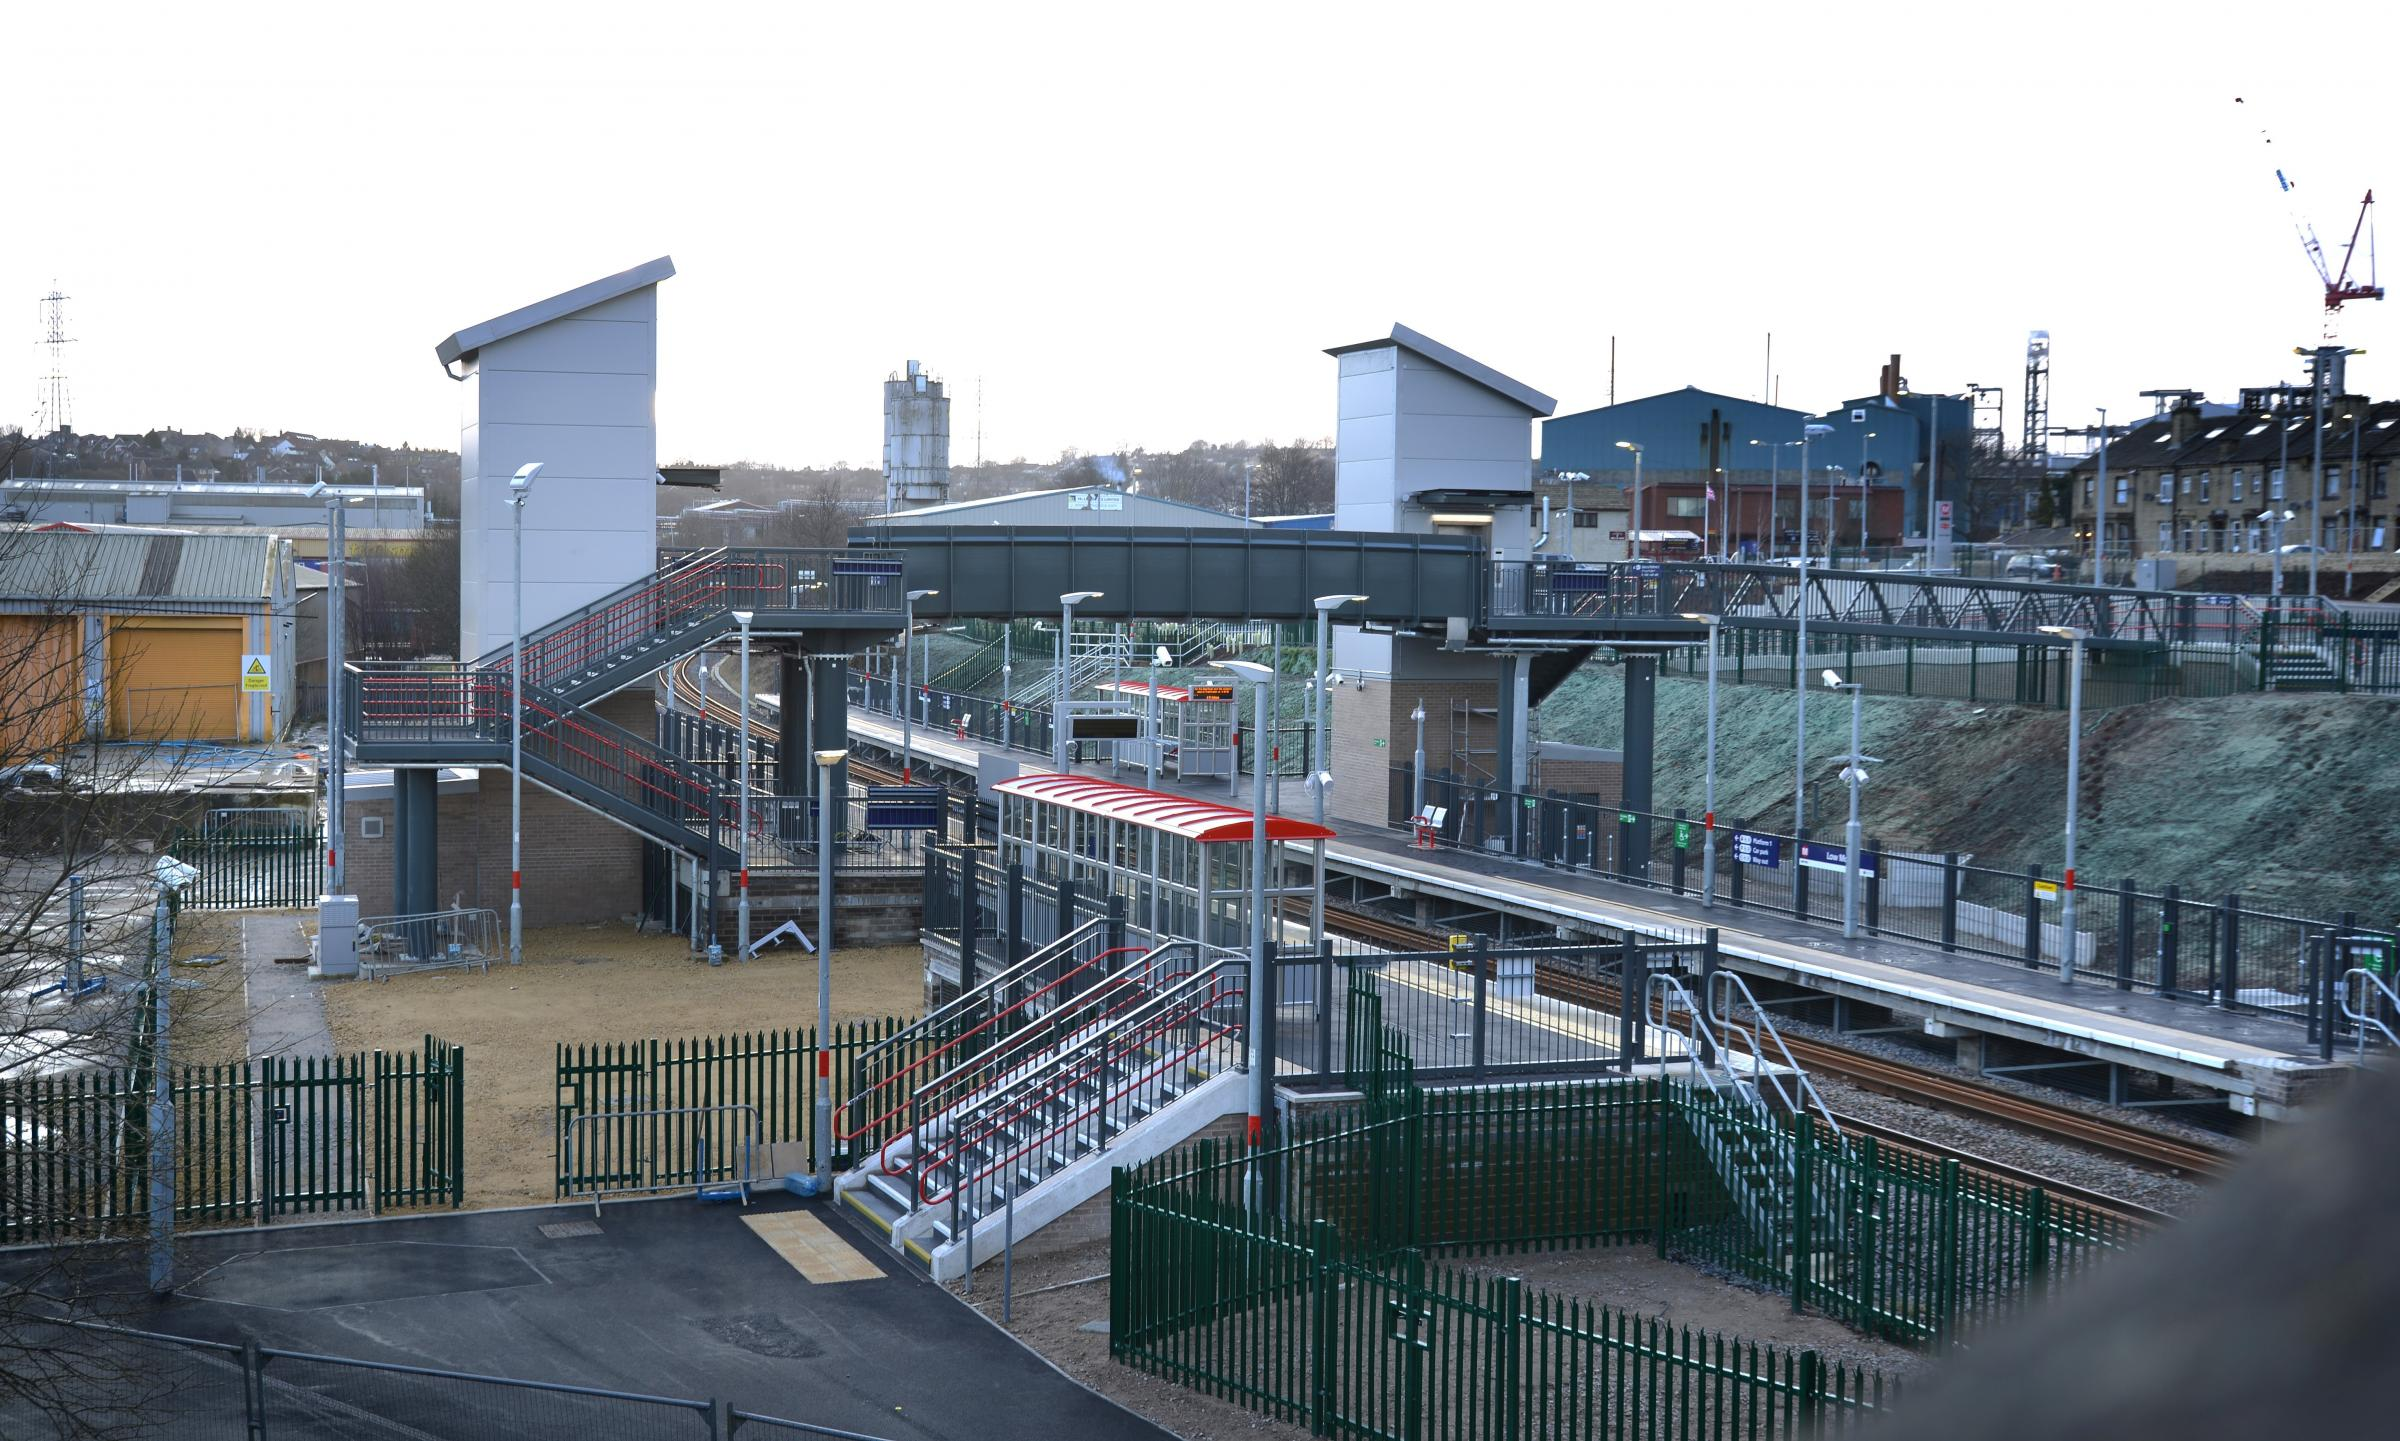 OPENING: The first trains will pass through the new £10million Low Moor railway station on April 2